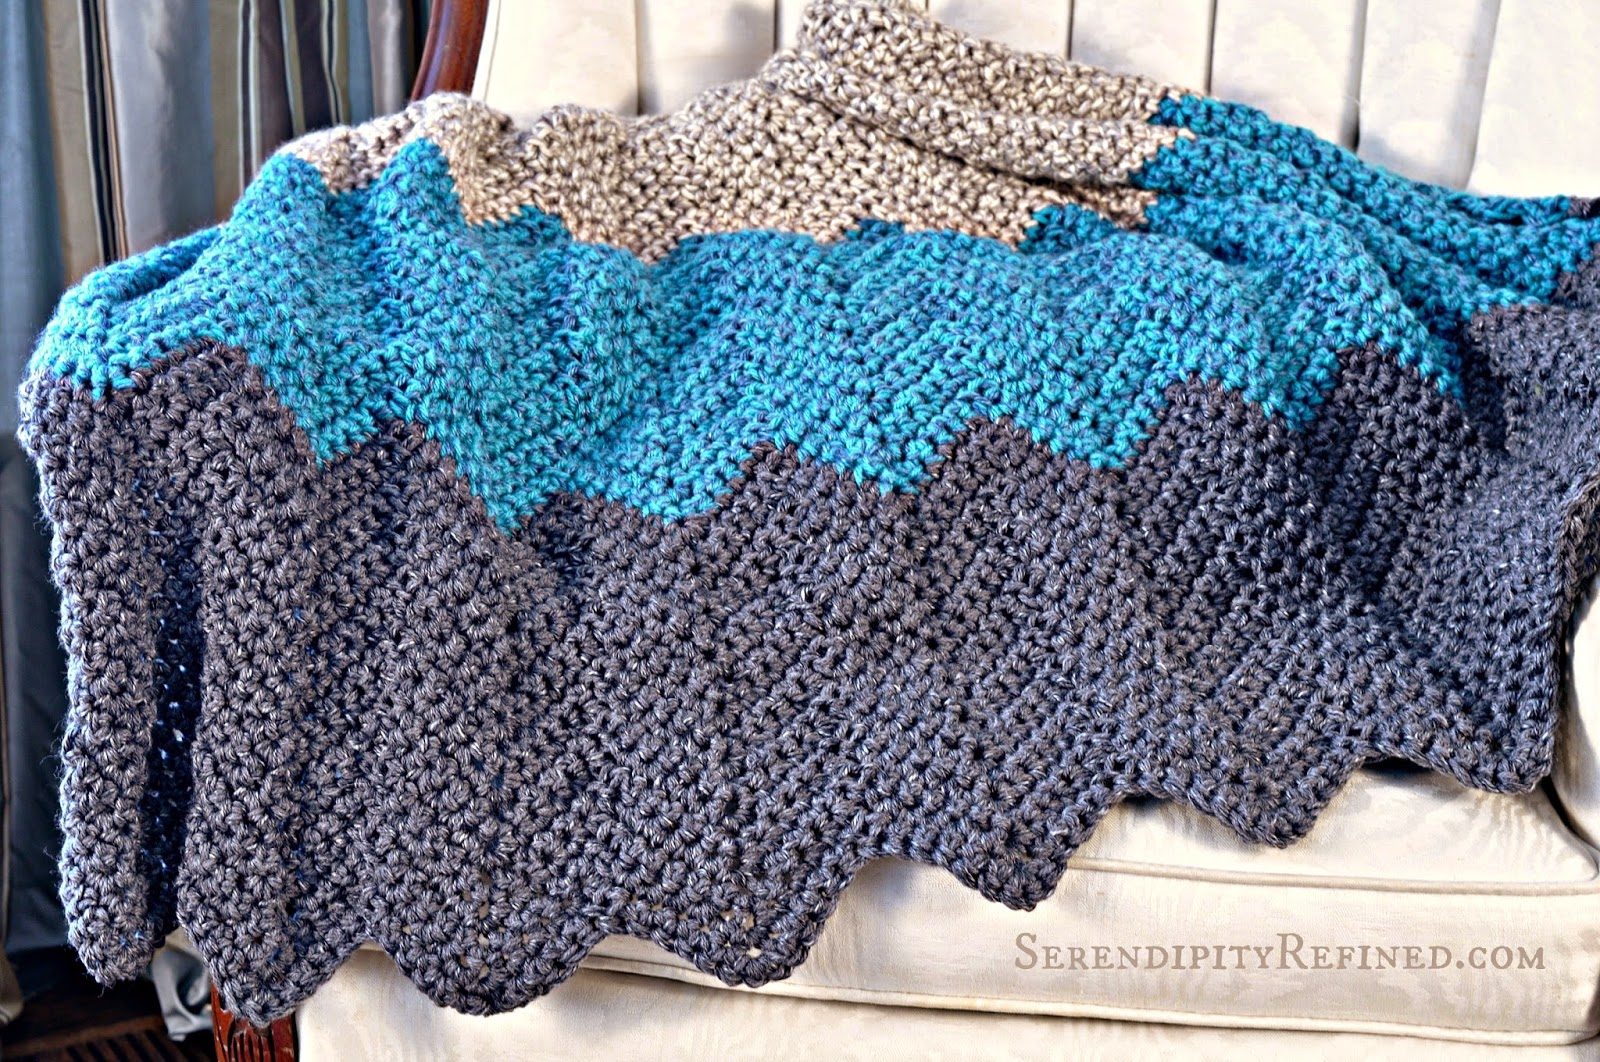 New Fast Easy Crochet Patterns For Blankets And Throws For 2015 ...